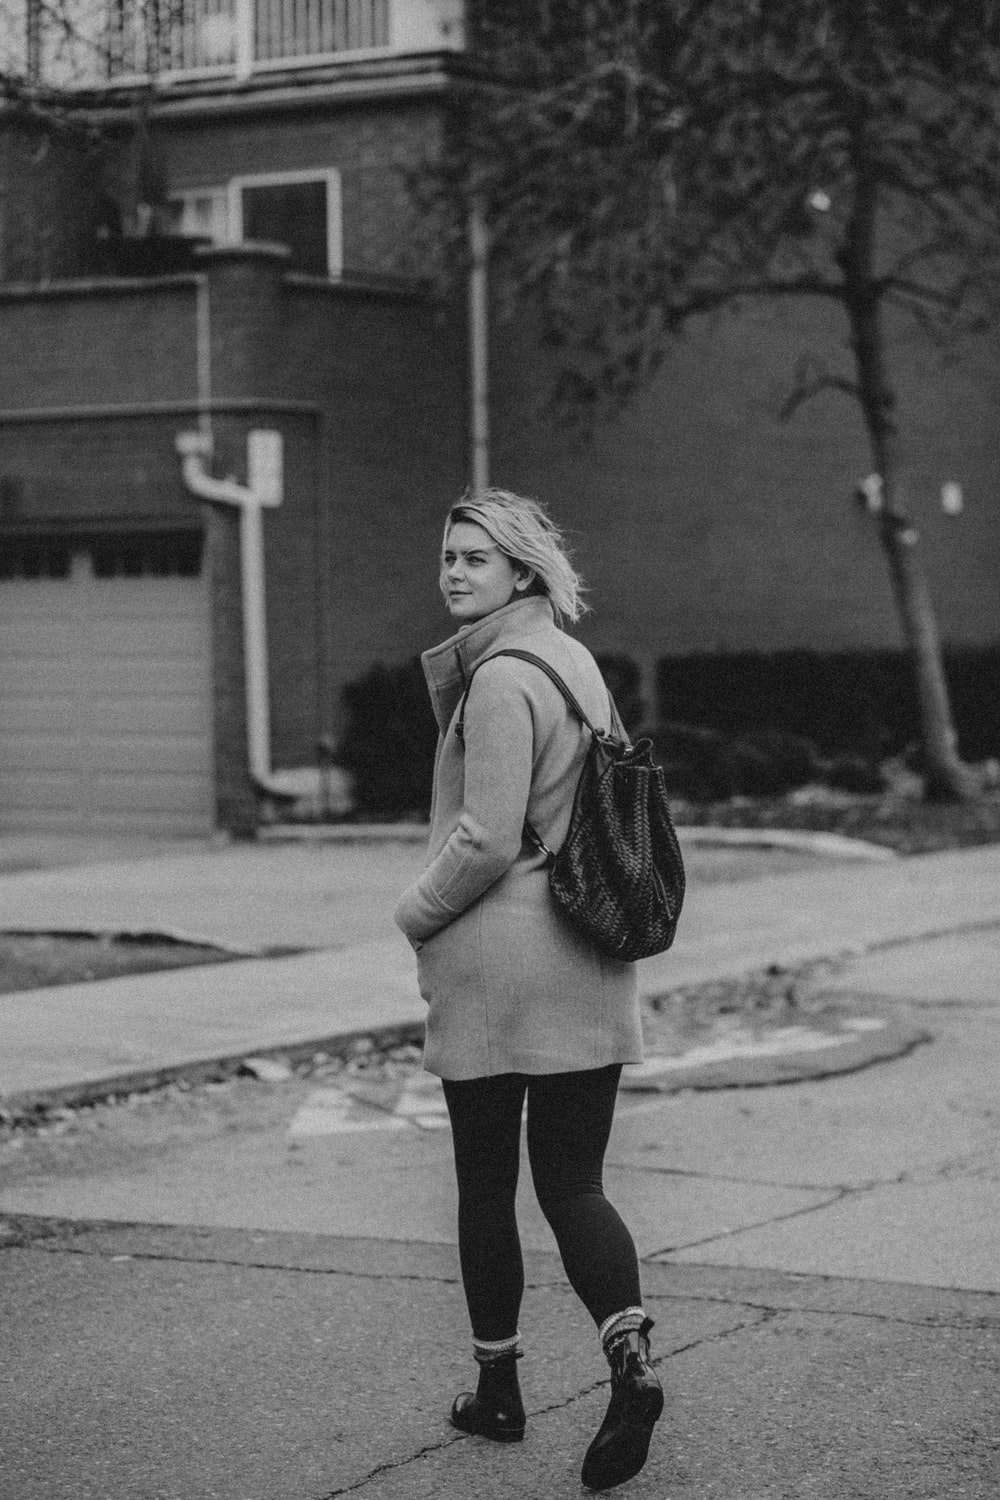 woman in jacket and pants standing on road